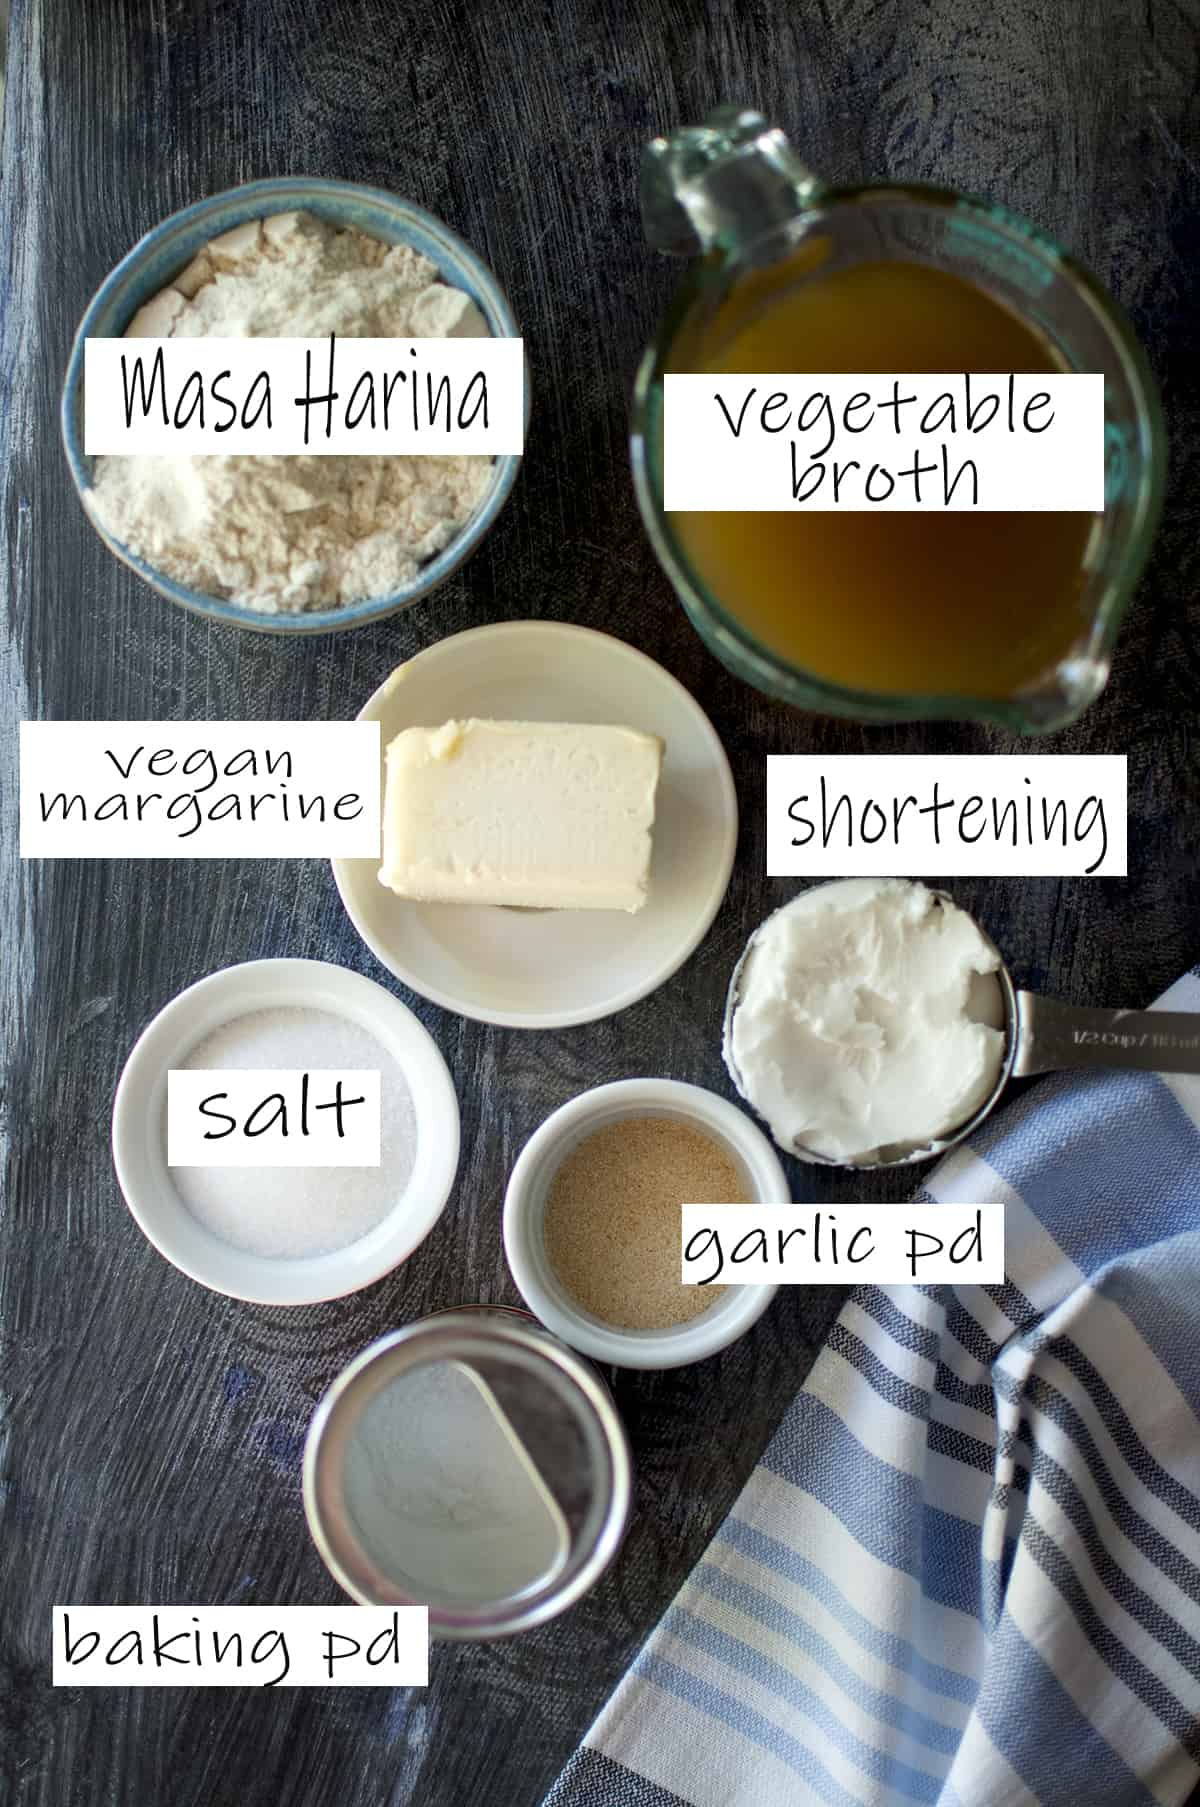 Ingredients for the dough - masa harina, margarine, shortening, vegetable broth, garlic powder, salt, baking powder